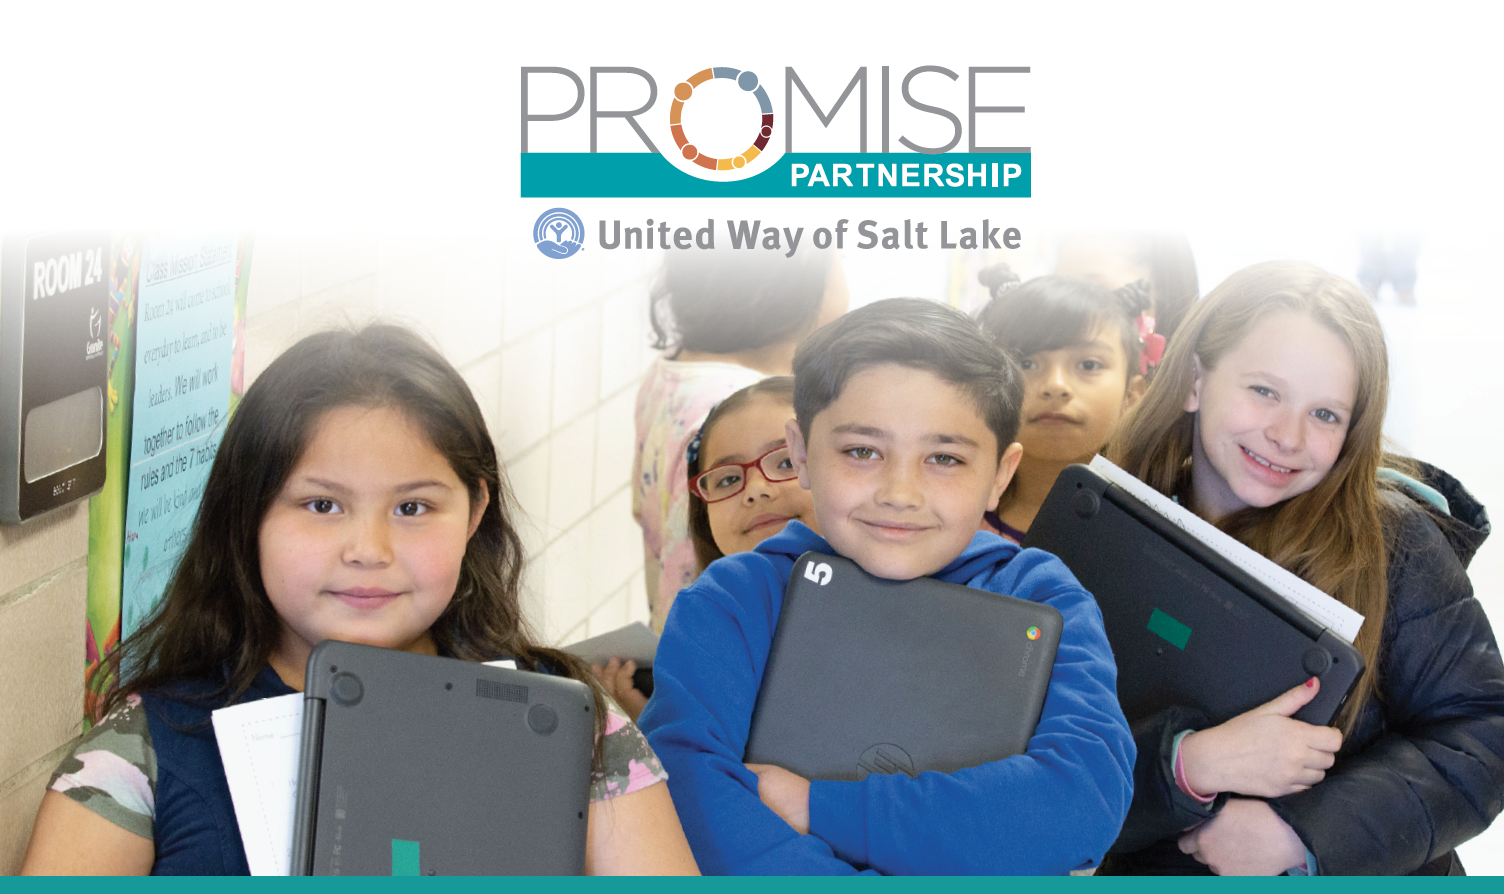 What is the McPolin Promise Partnership?